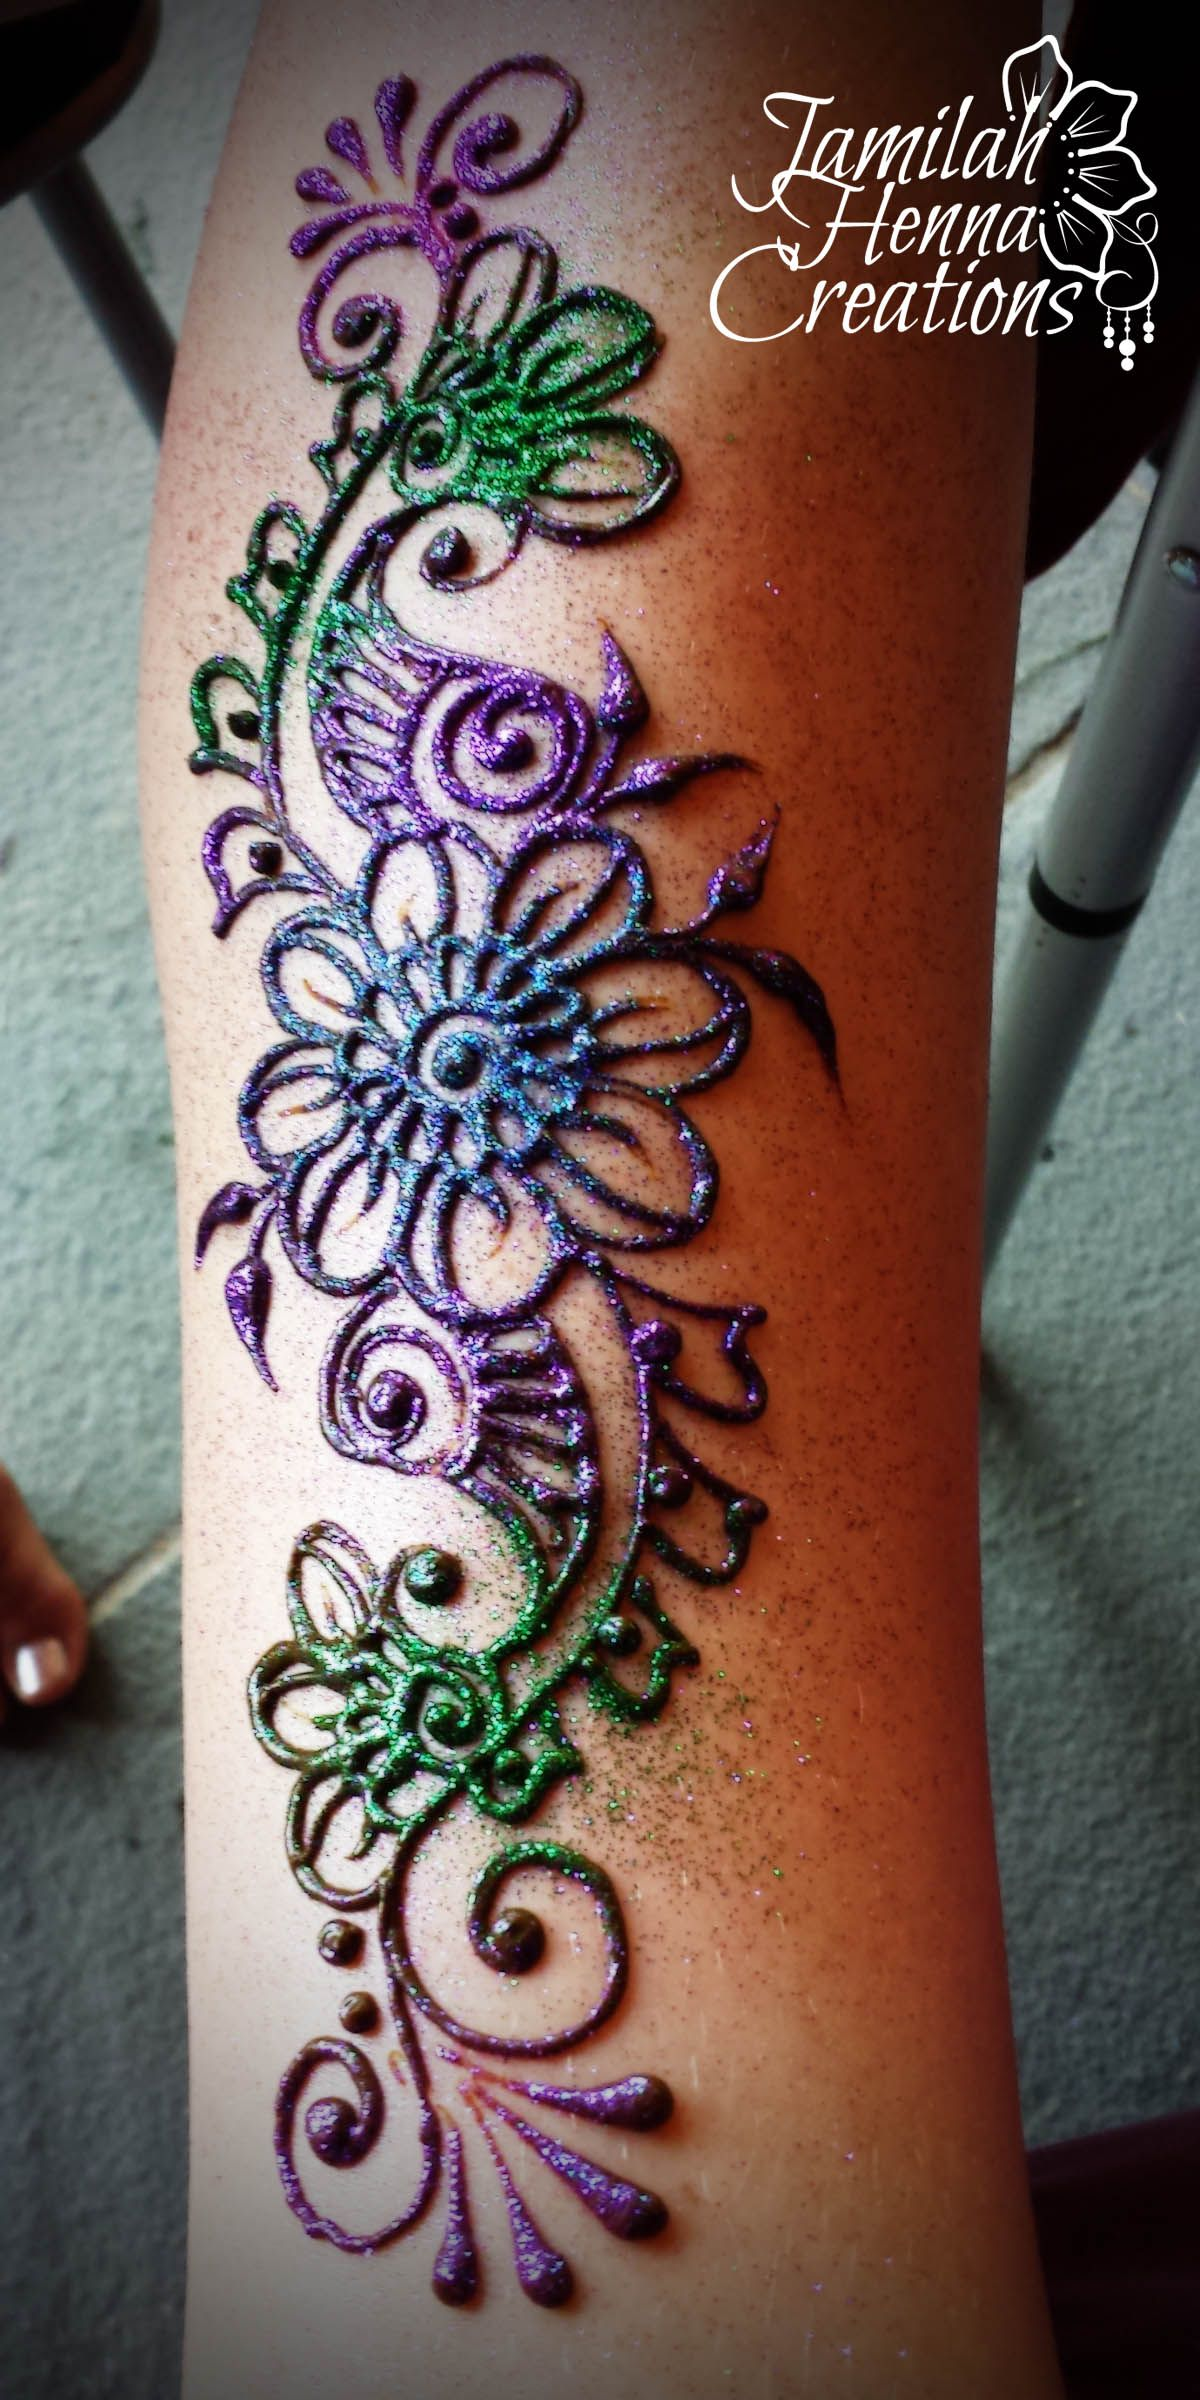 Colorful Henna Designs: Henna With Multi Colored Glitter Www.JamilahHennaCreations